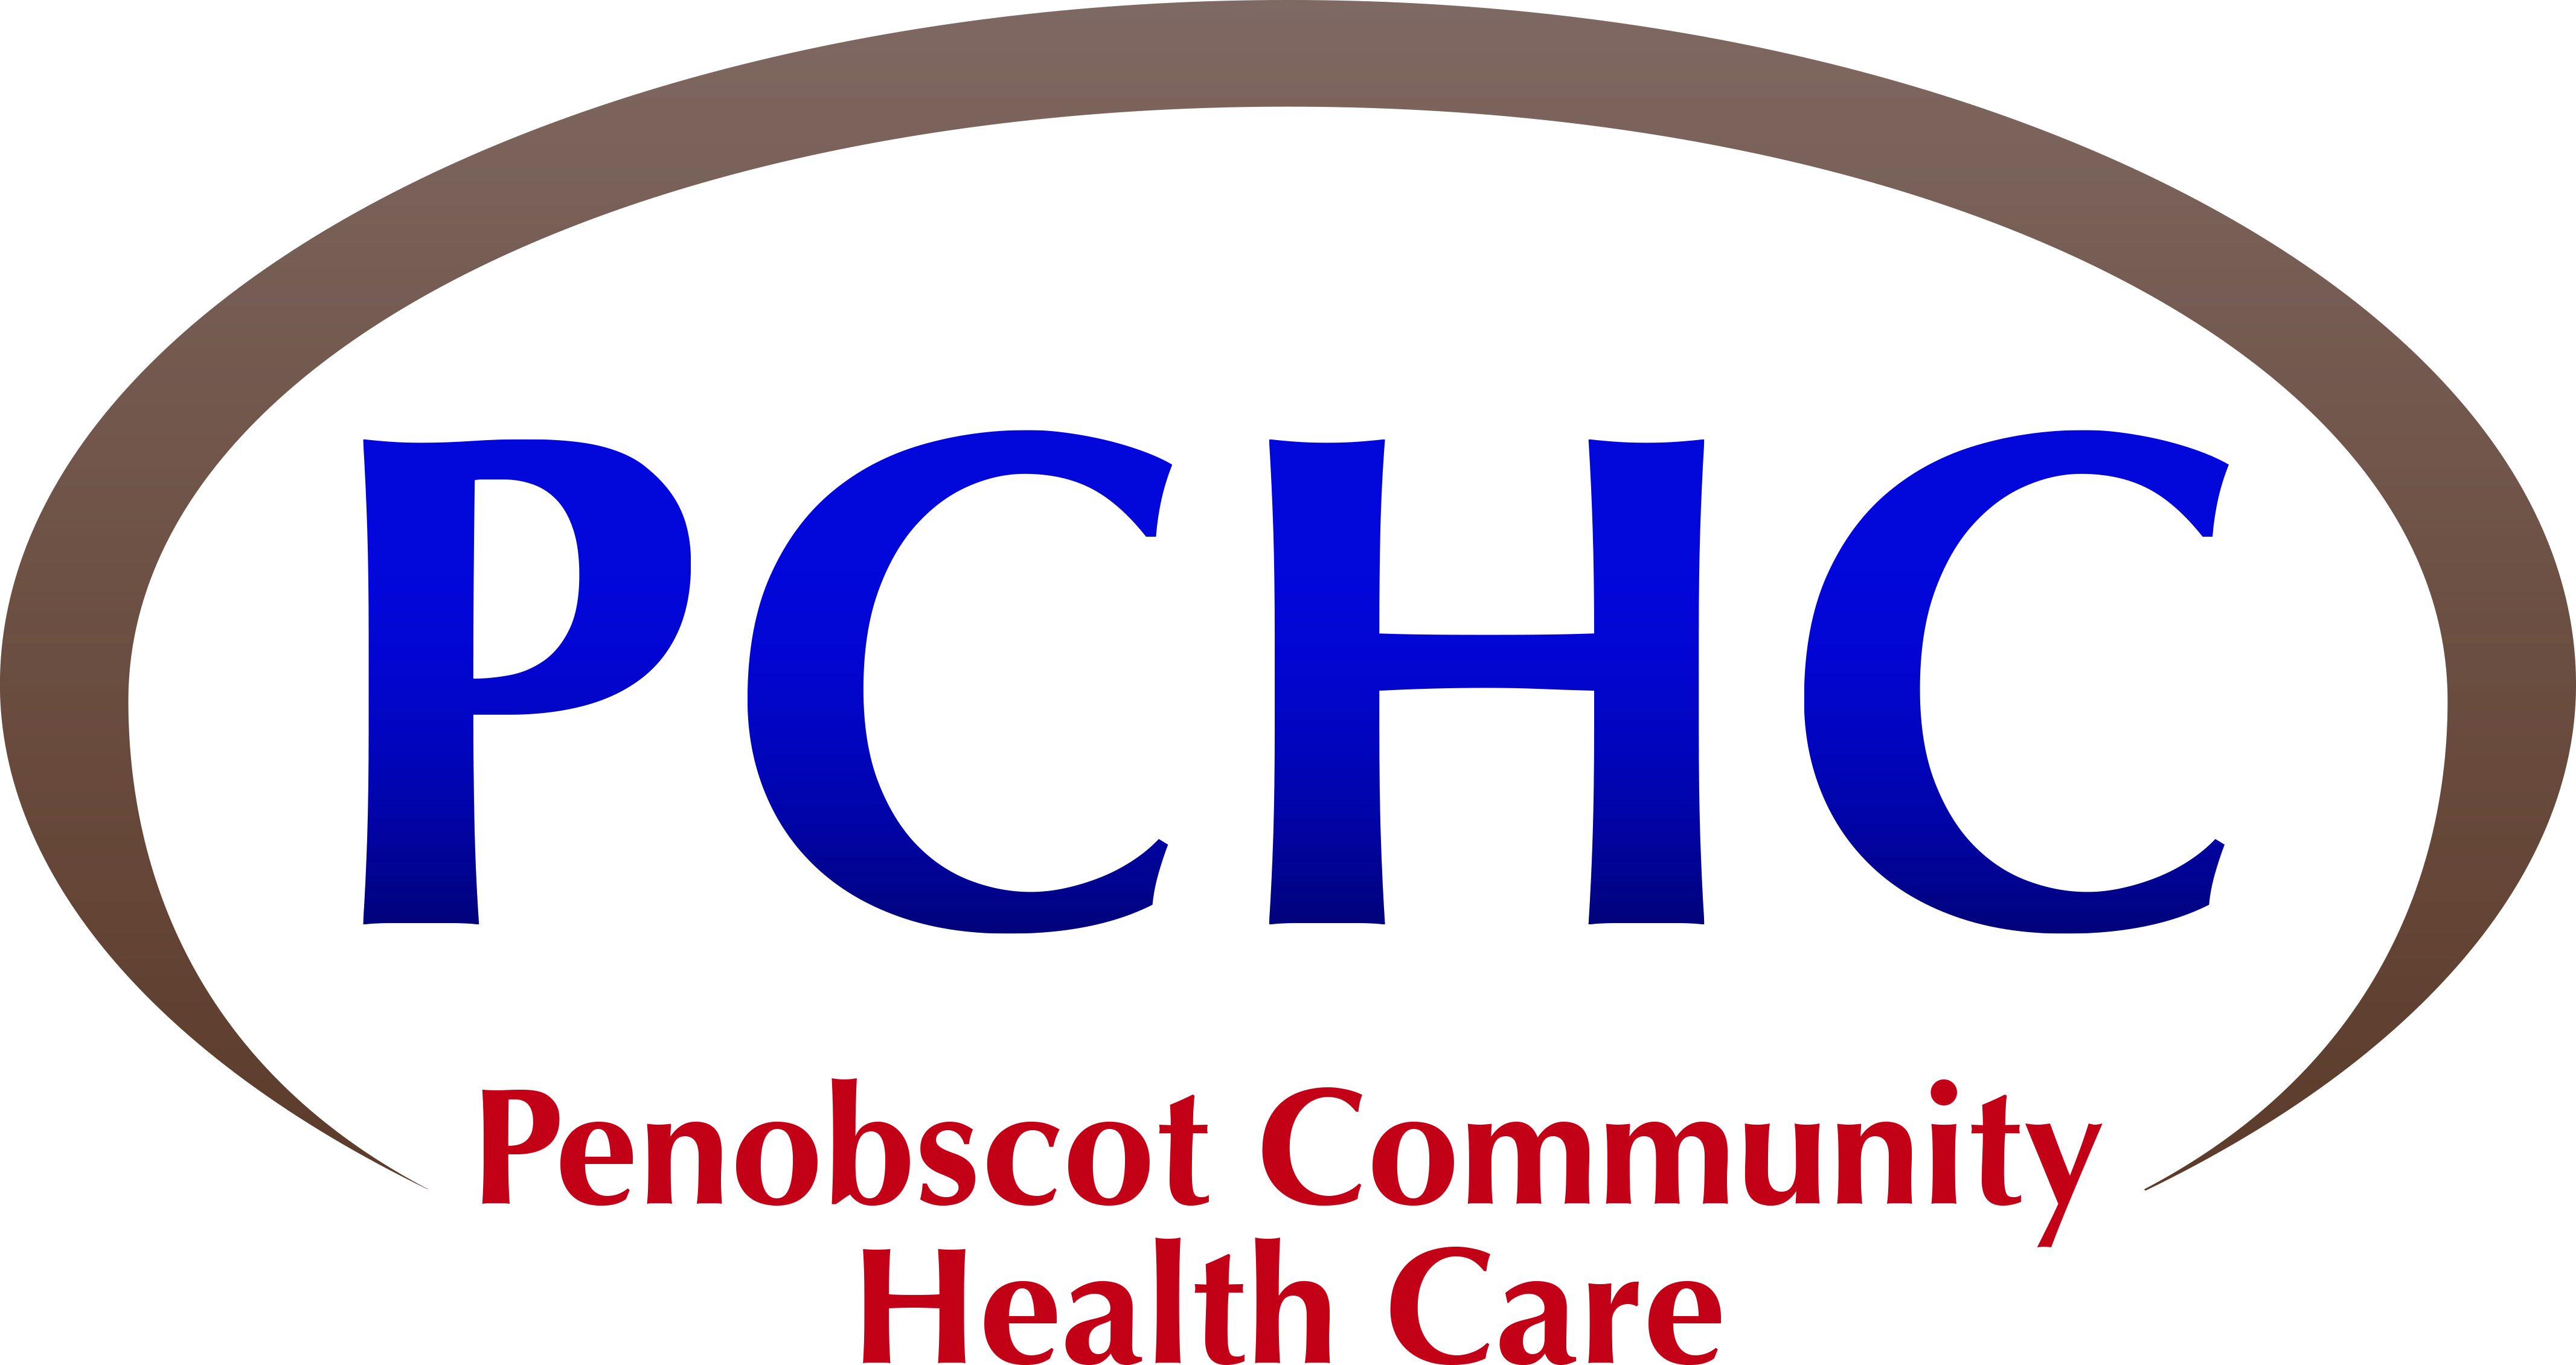 Penobscot Community Health Care